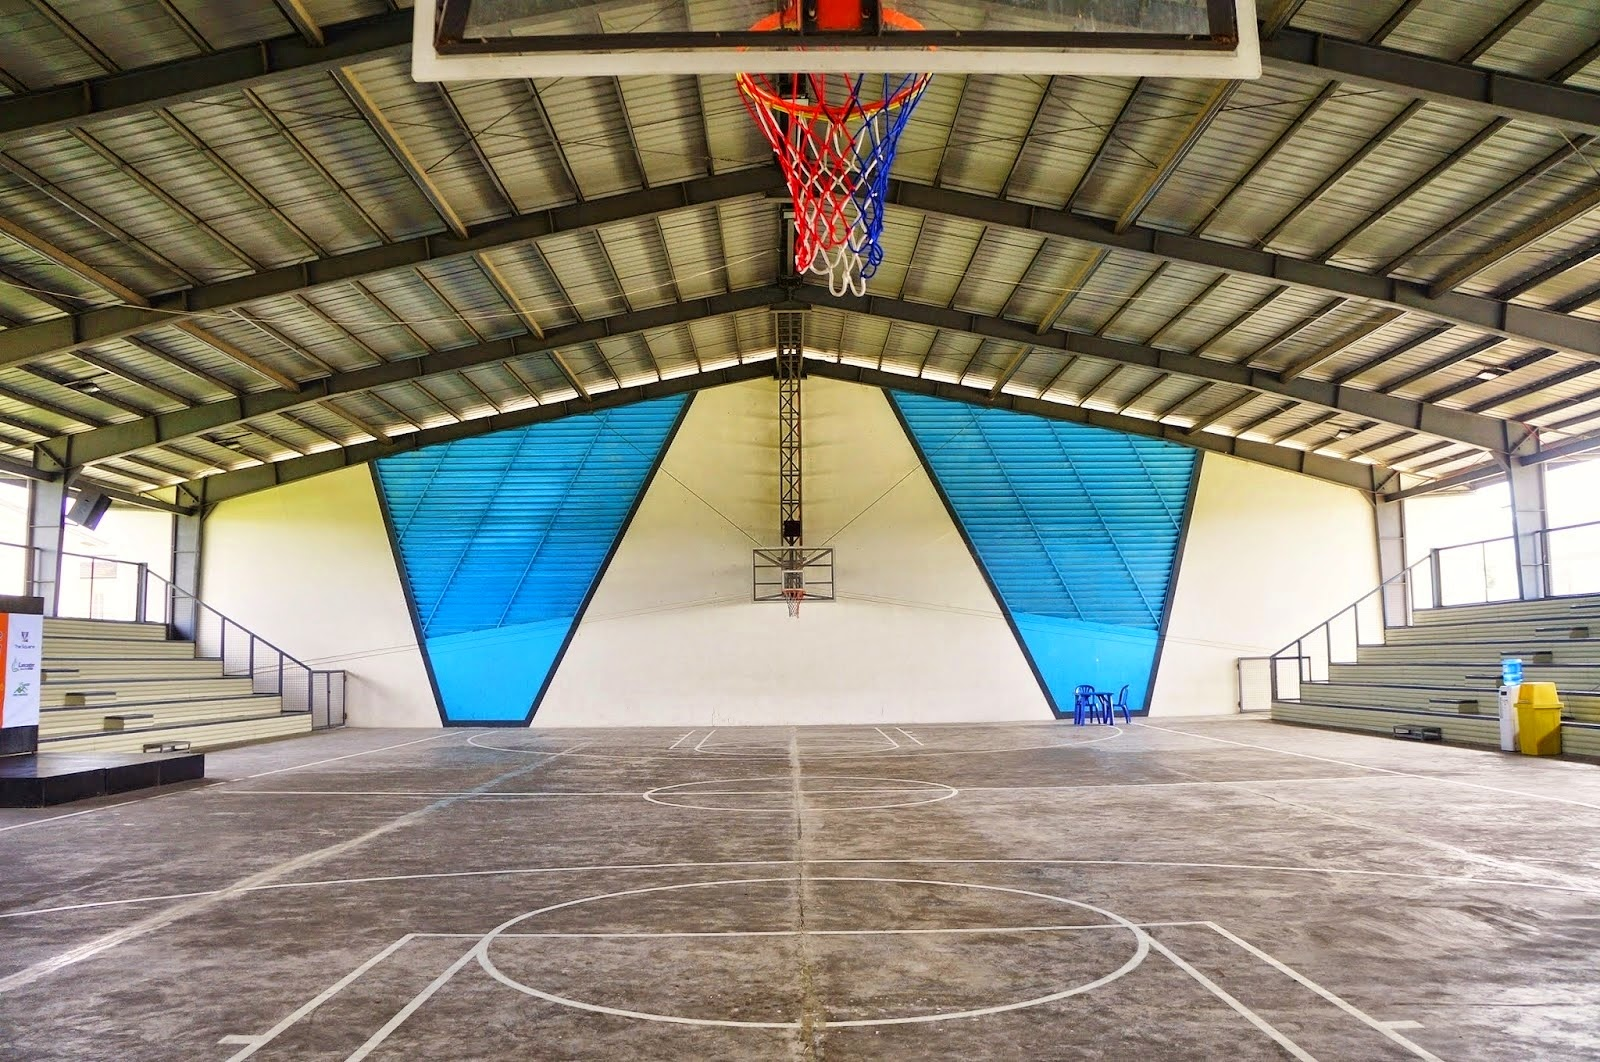 Covered Outdoor Basketball Court